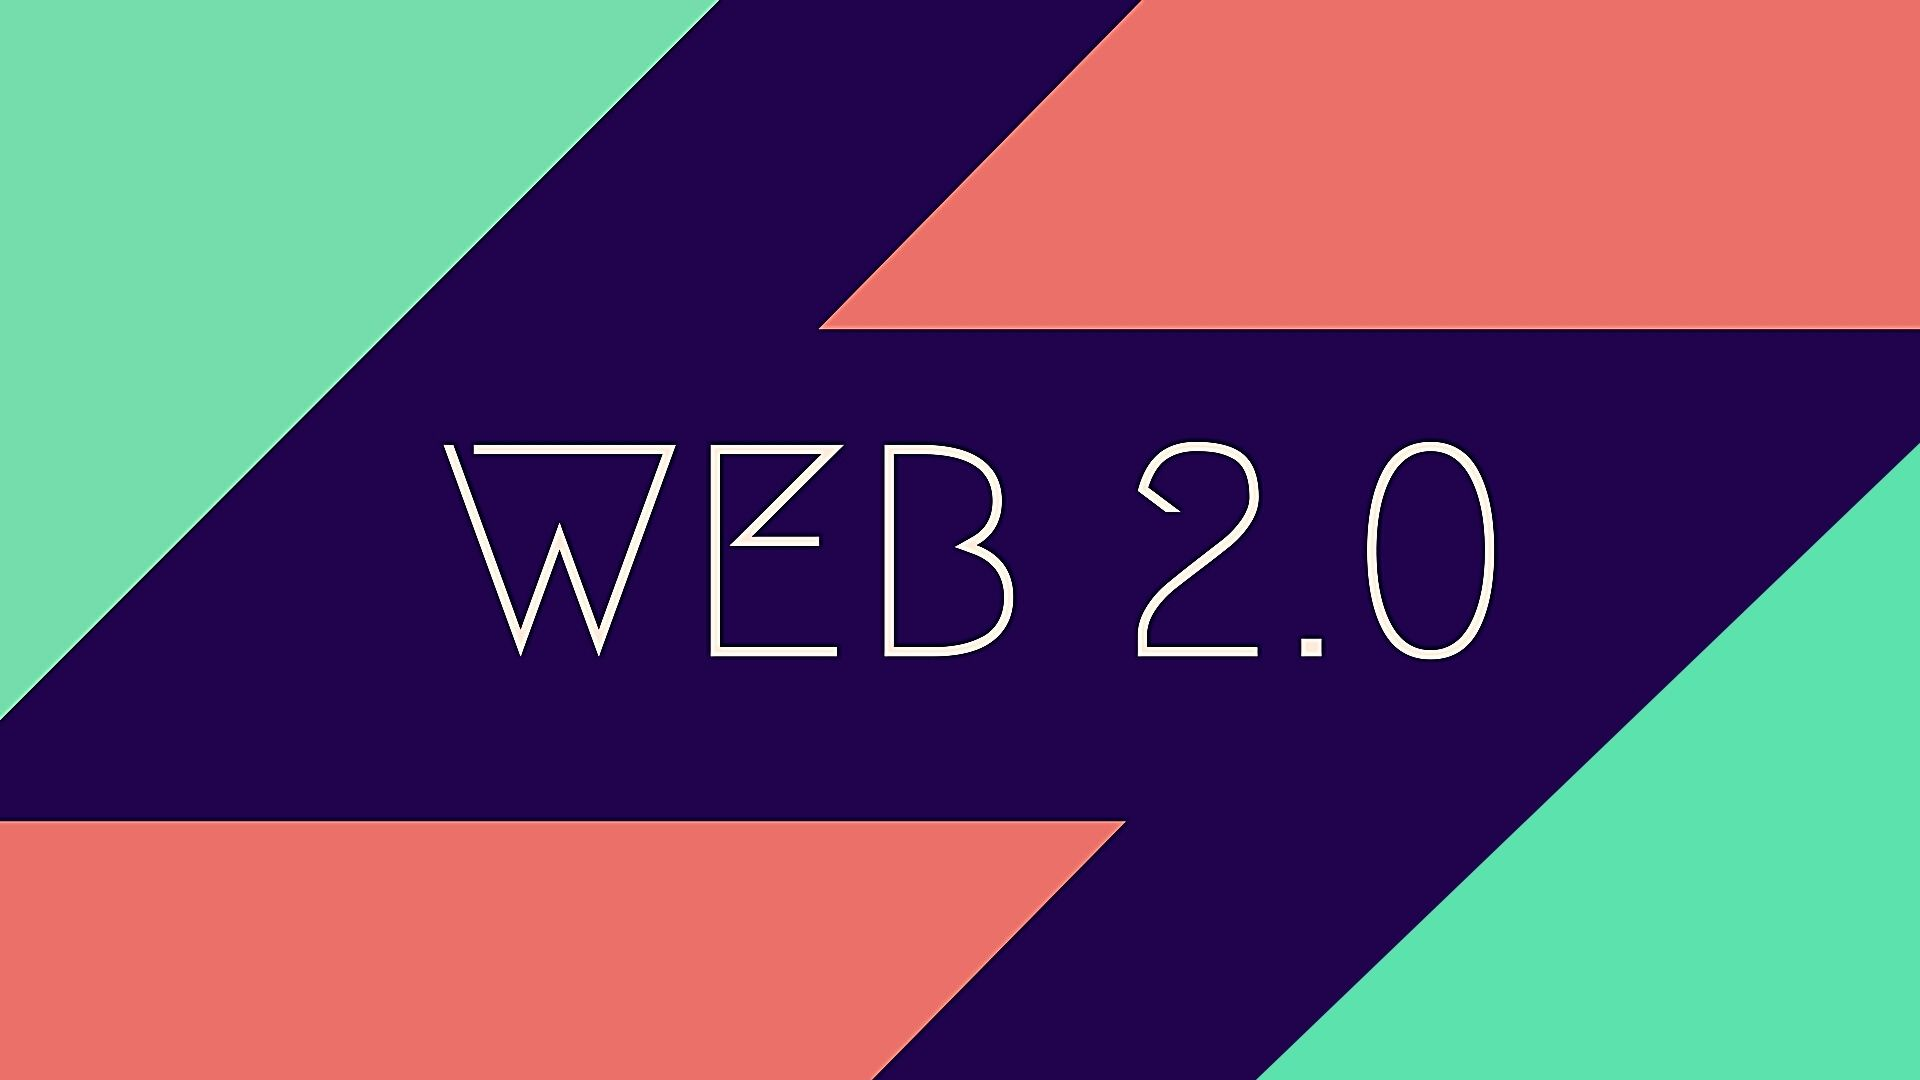 I create a web 2.0 website for your business